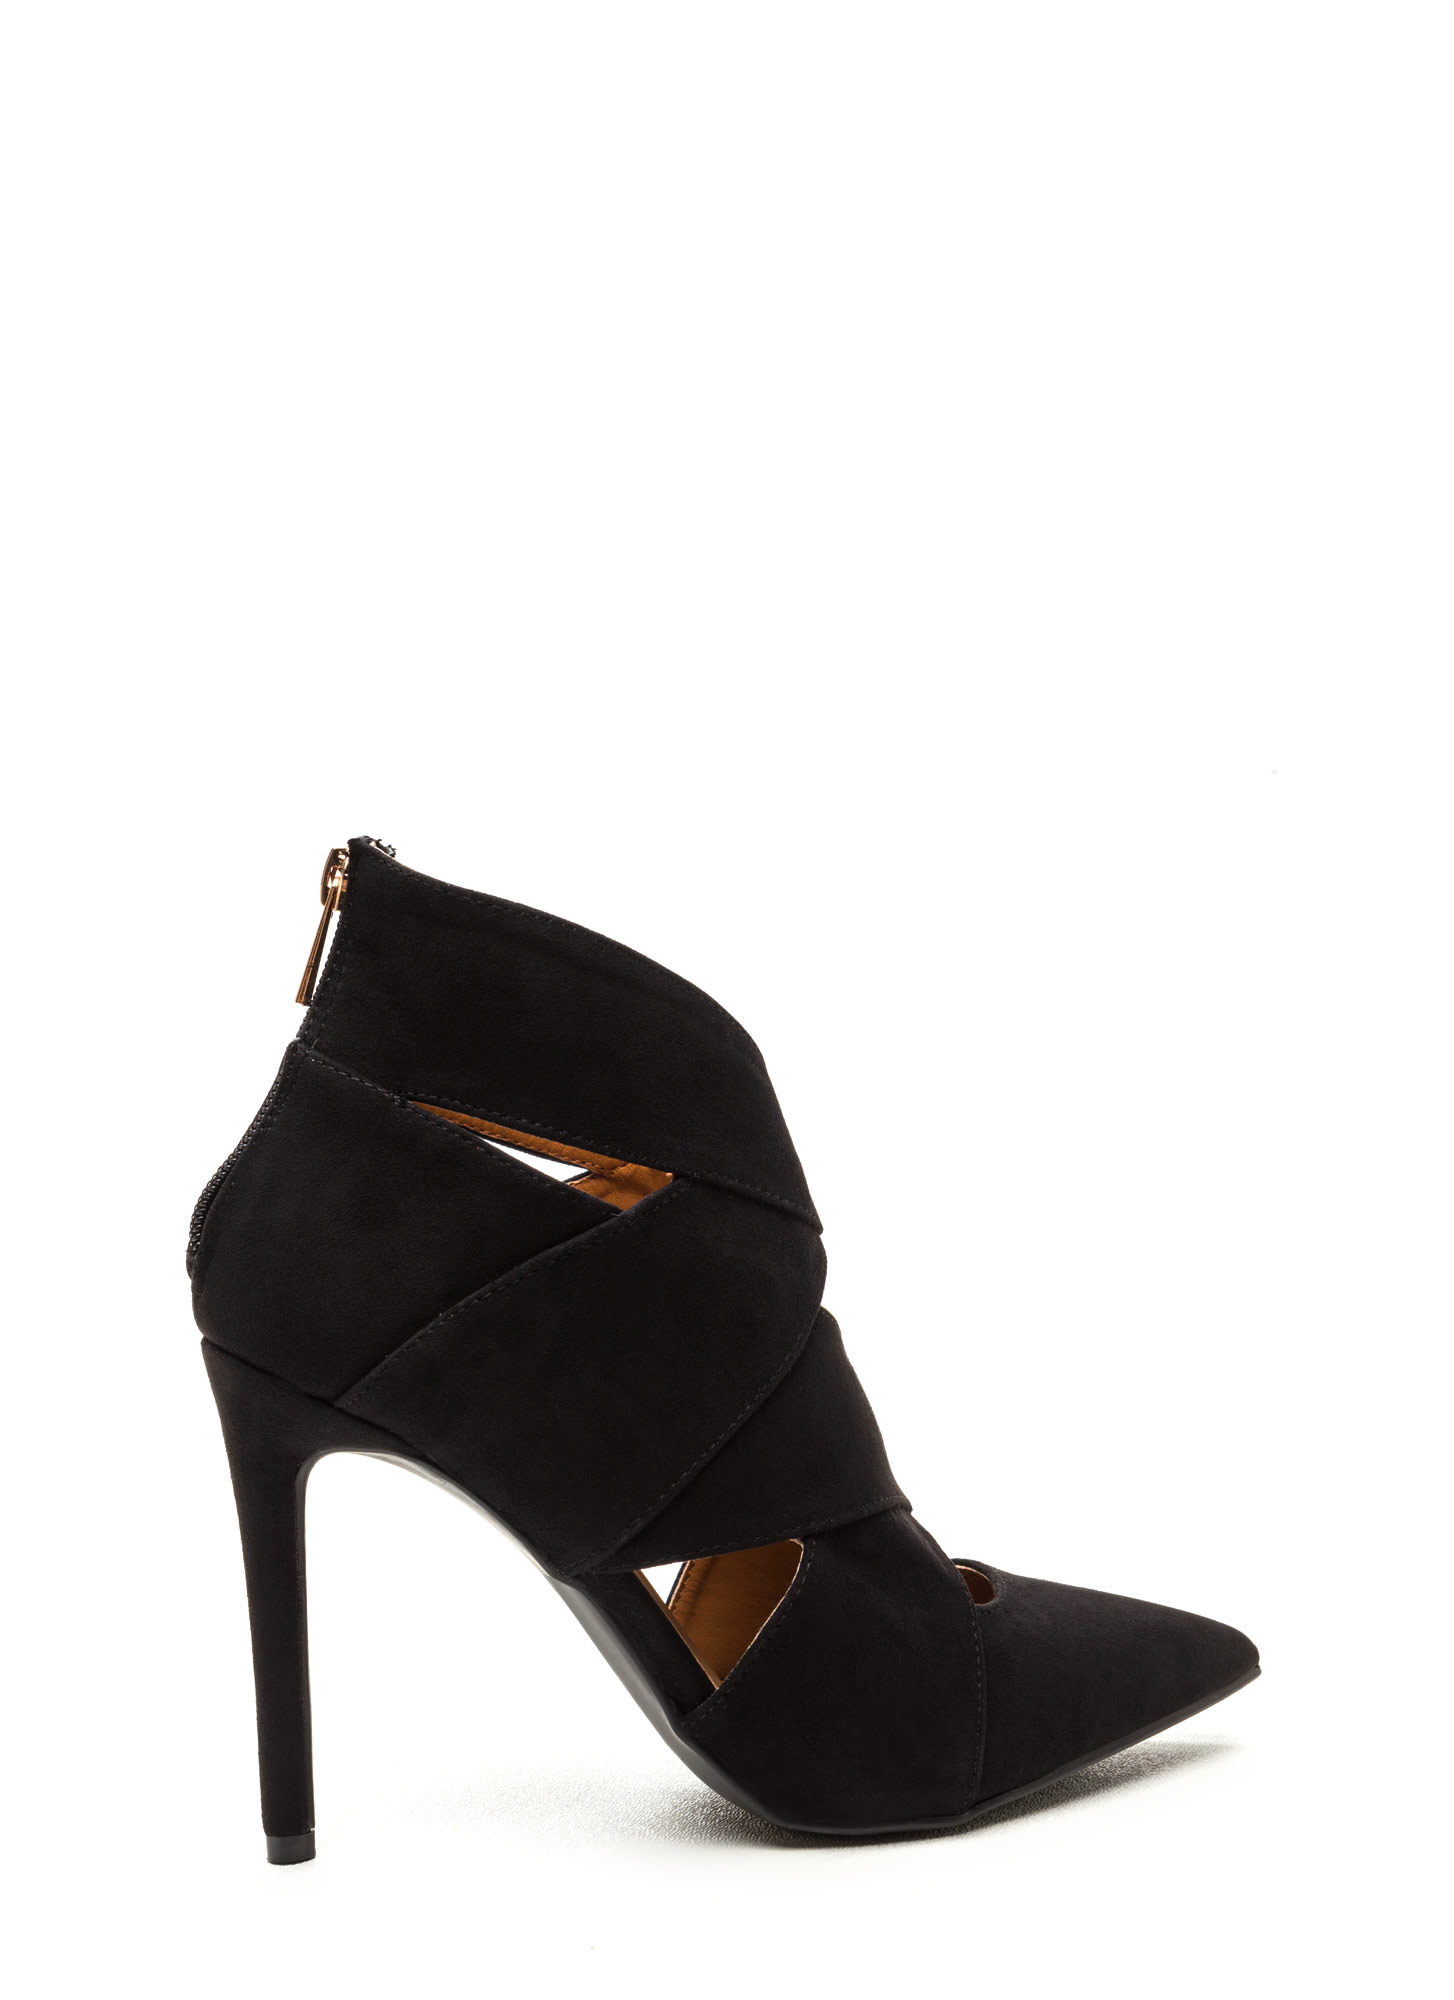 Wrap Star Strappy Cut-Out Heels BLACK